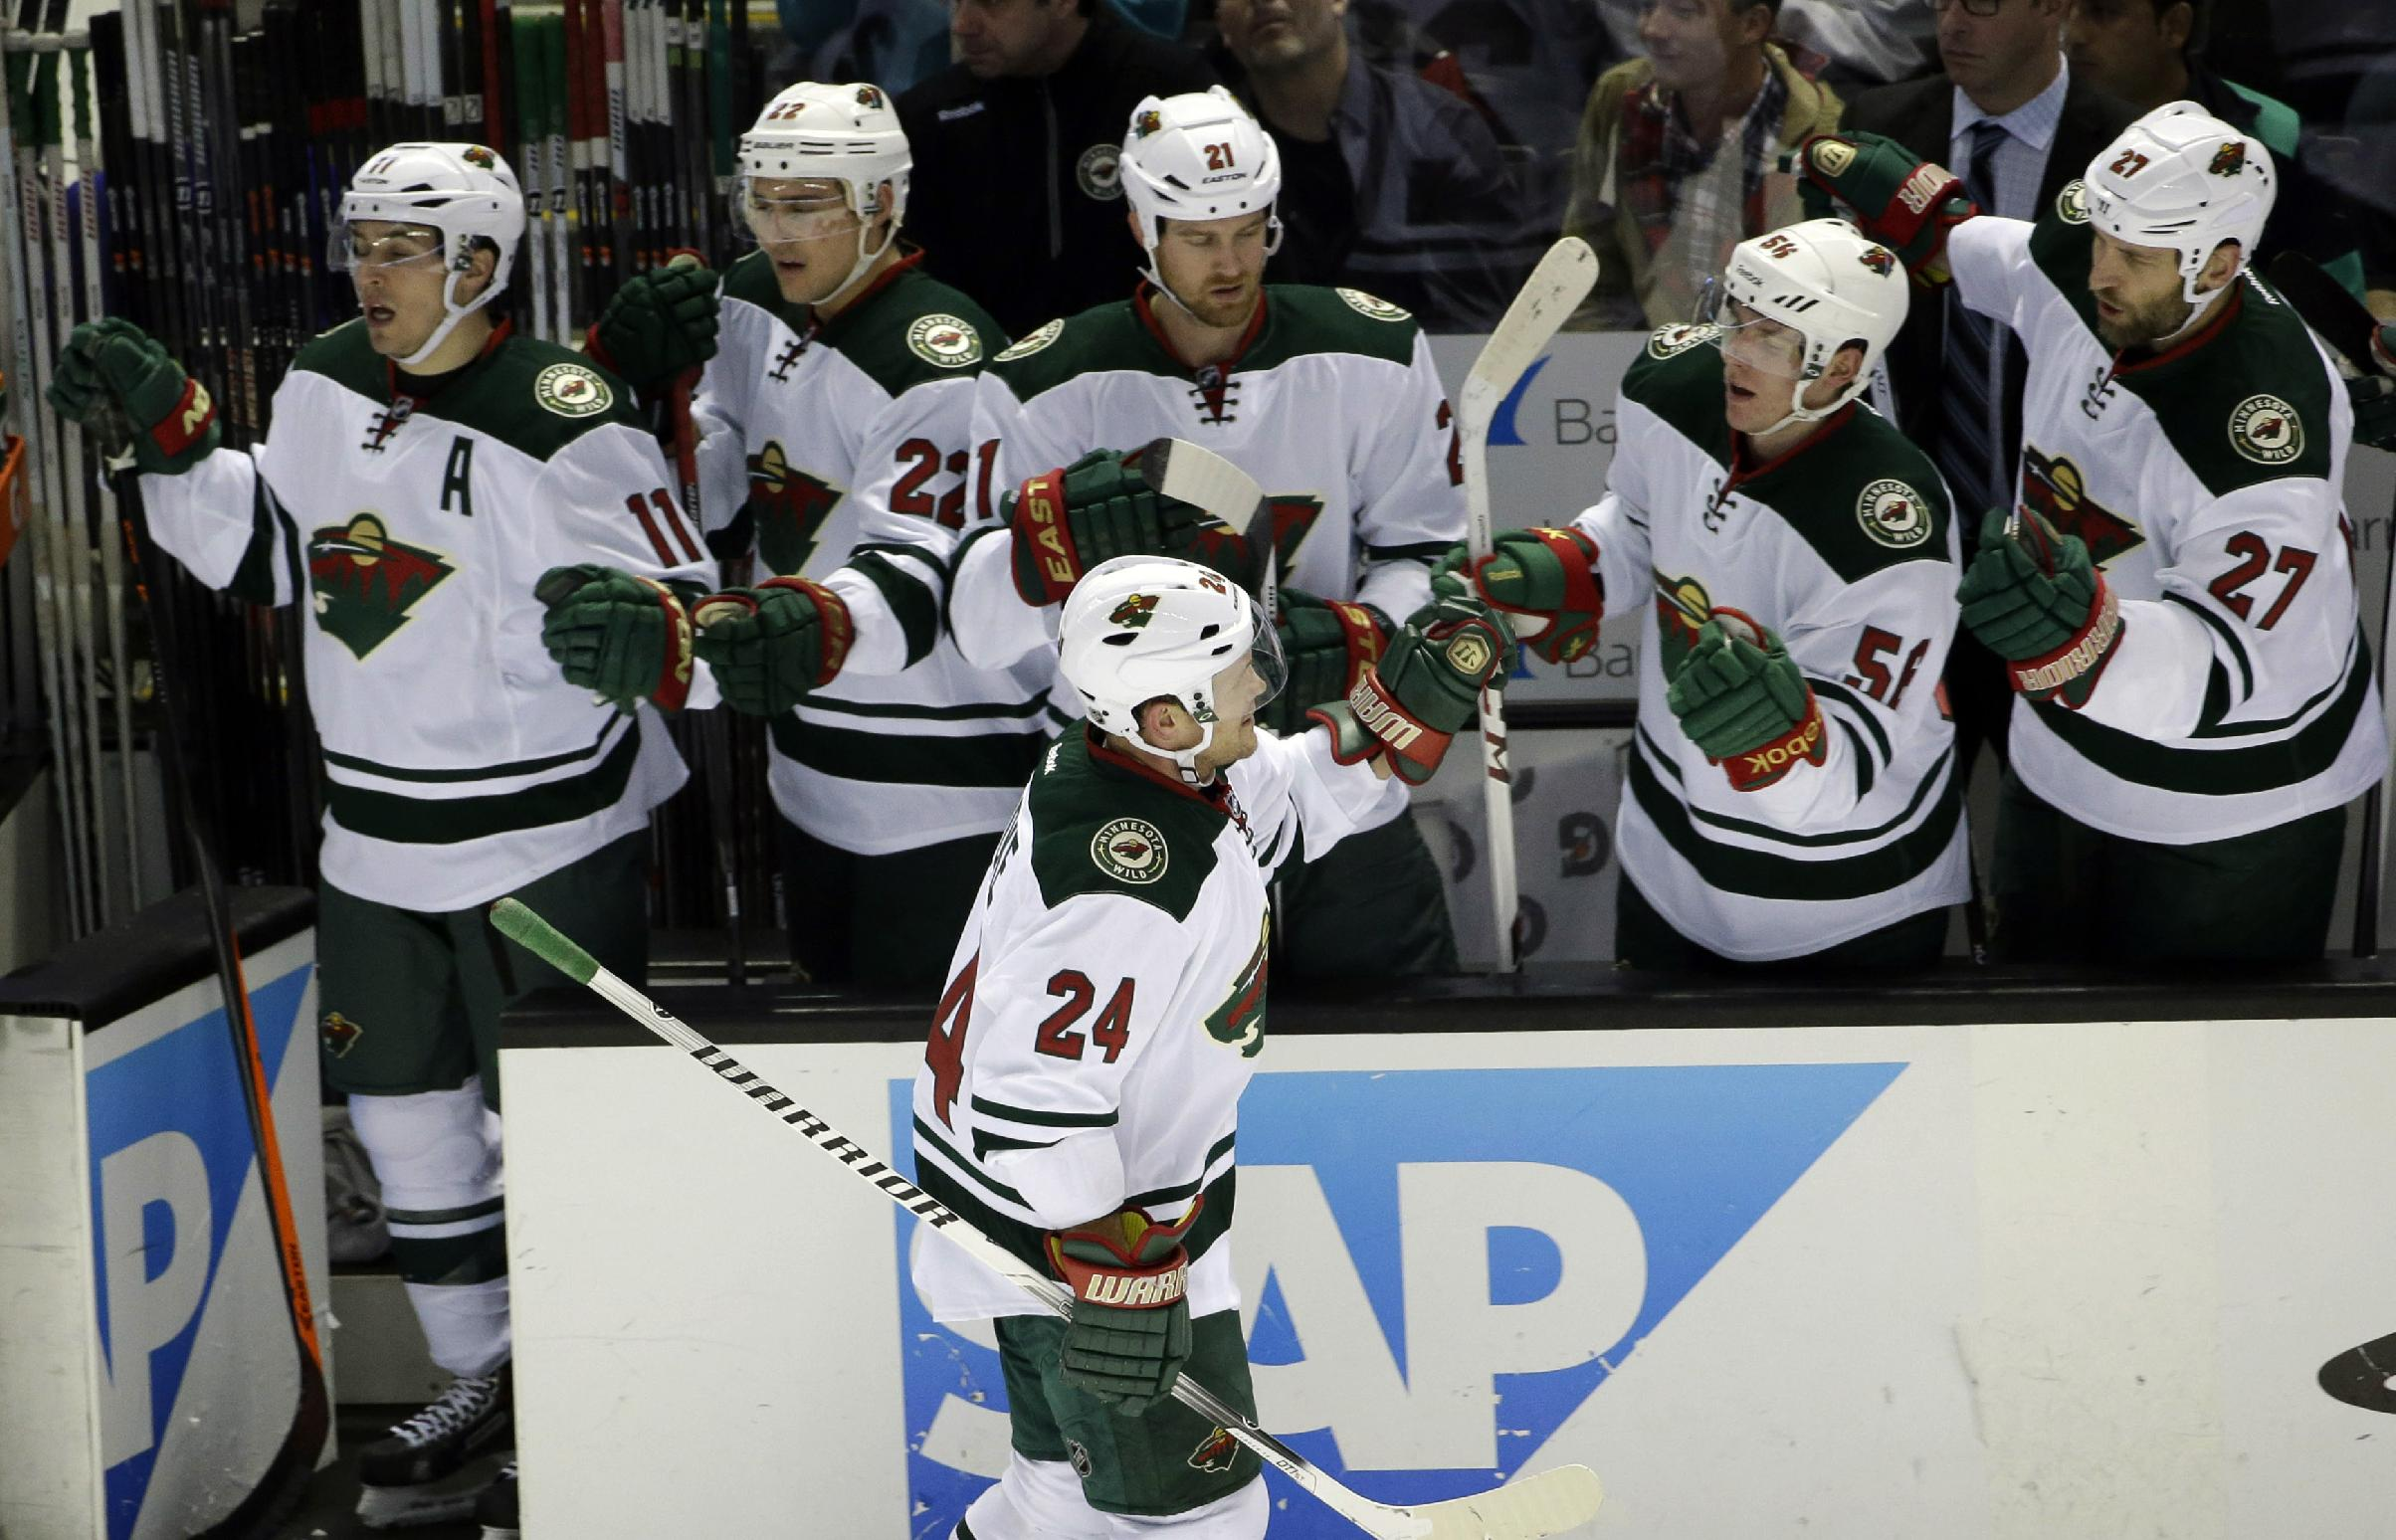 Minnesota Wild's Matt Cooke (24) celebrates his goal with teammates during the first period of an NHL hockey game against the San Jose Sharks on Saturday, Jan. 25, 2014, in San Jose, Calif